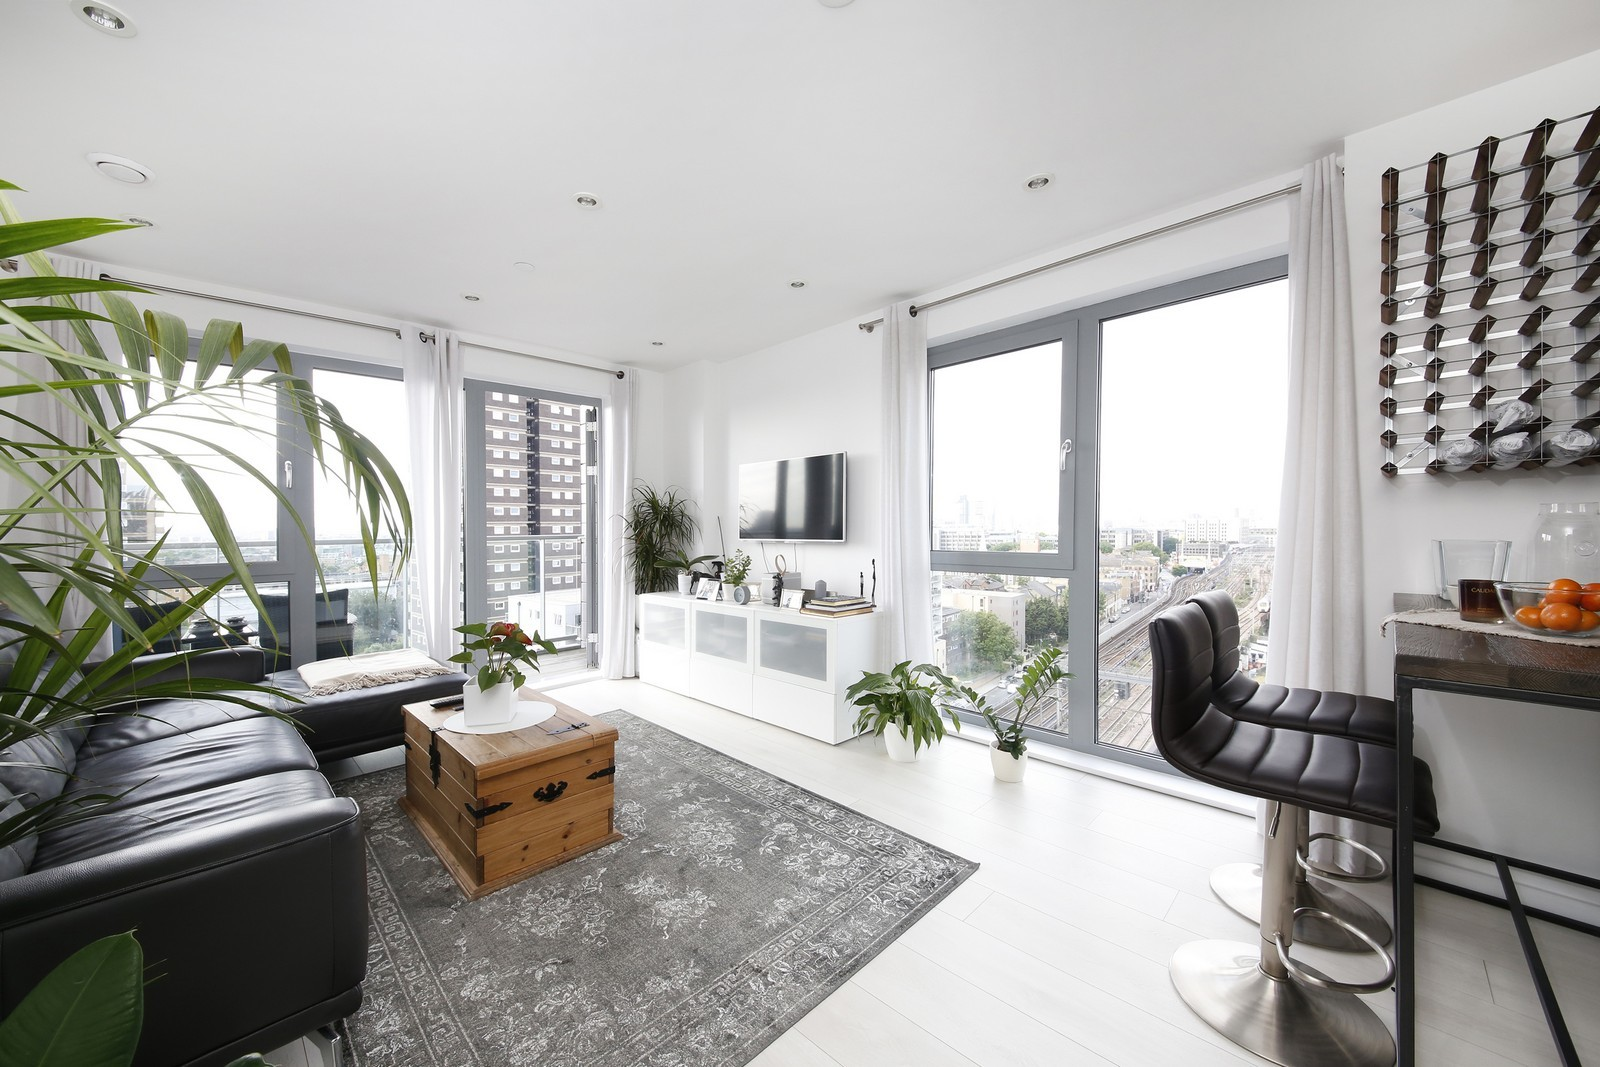 2 BEDROOM FLAT WILSON TOWER For Sale in London   Ready ...